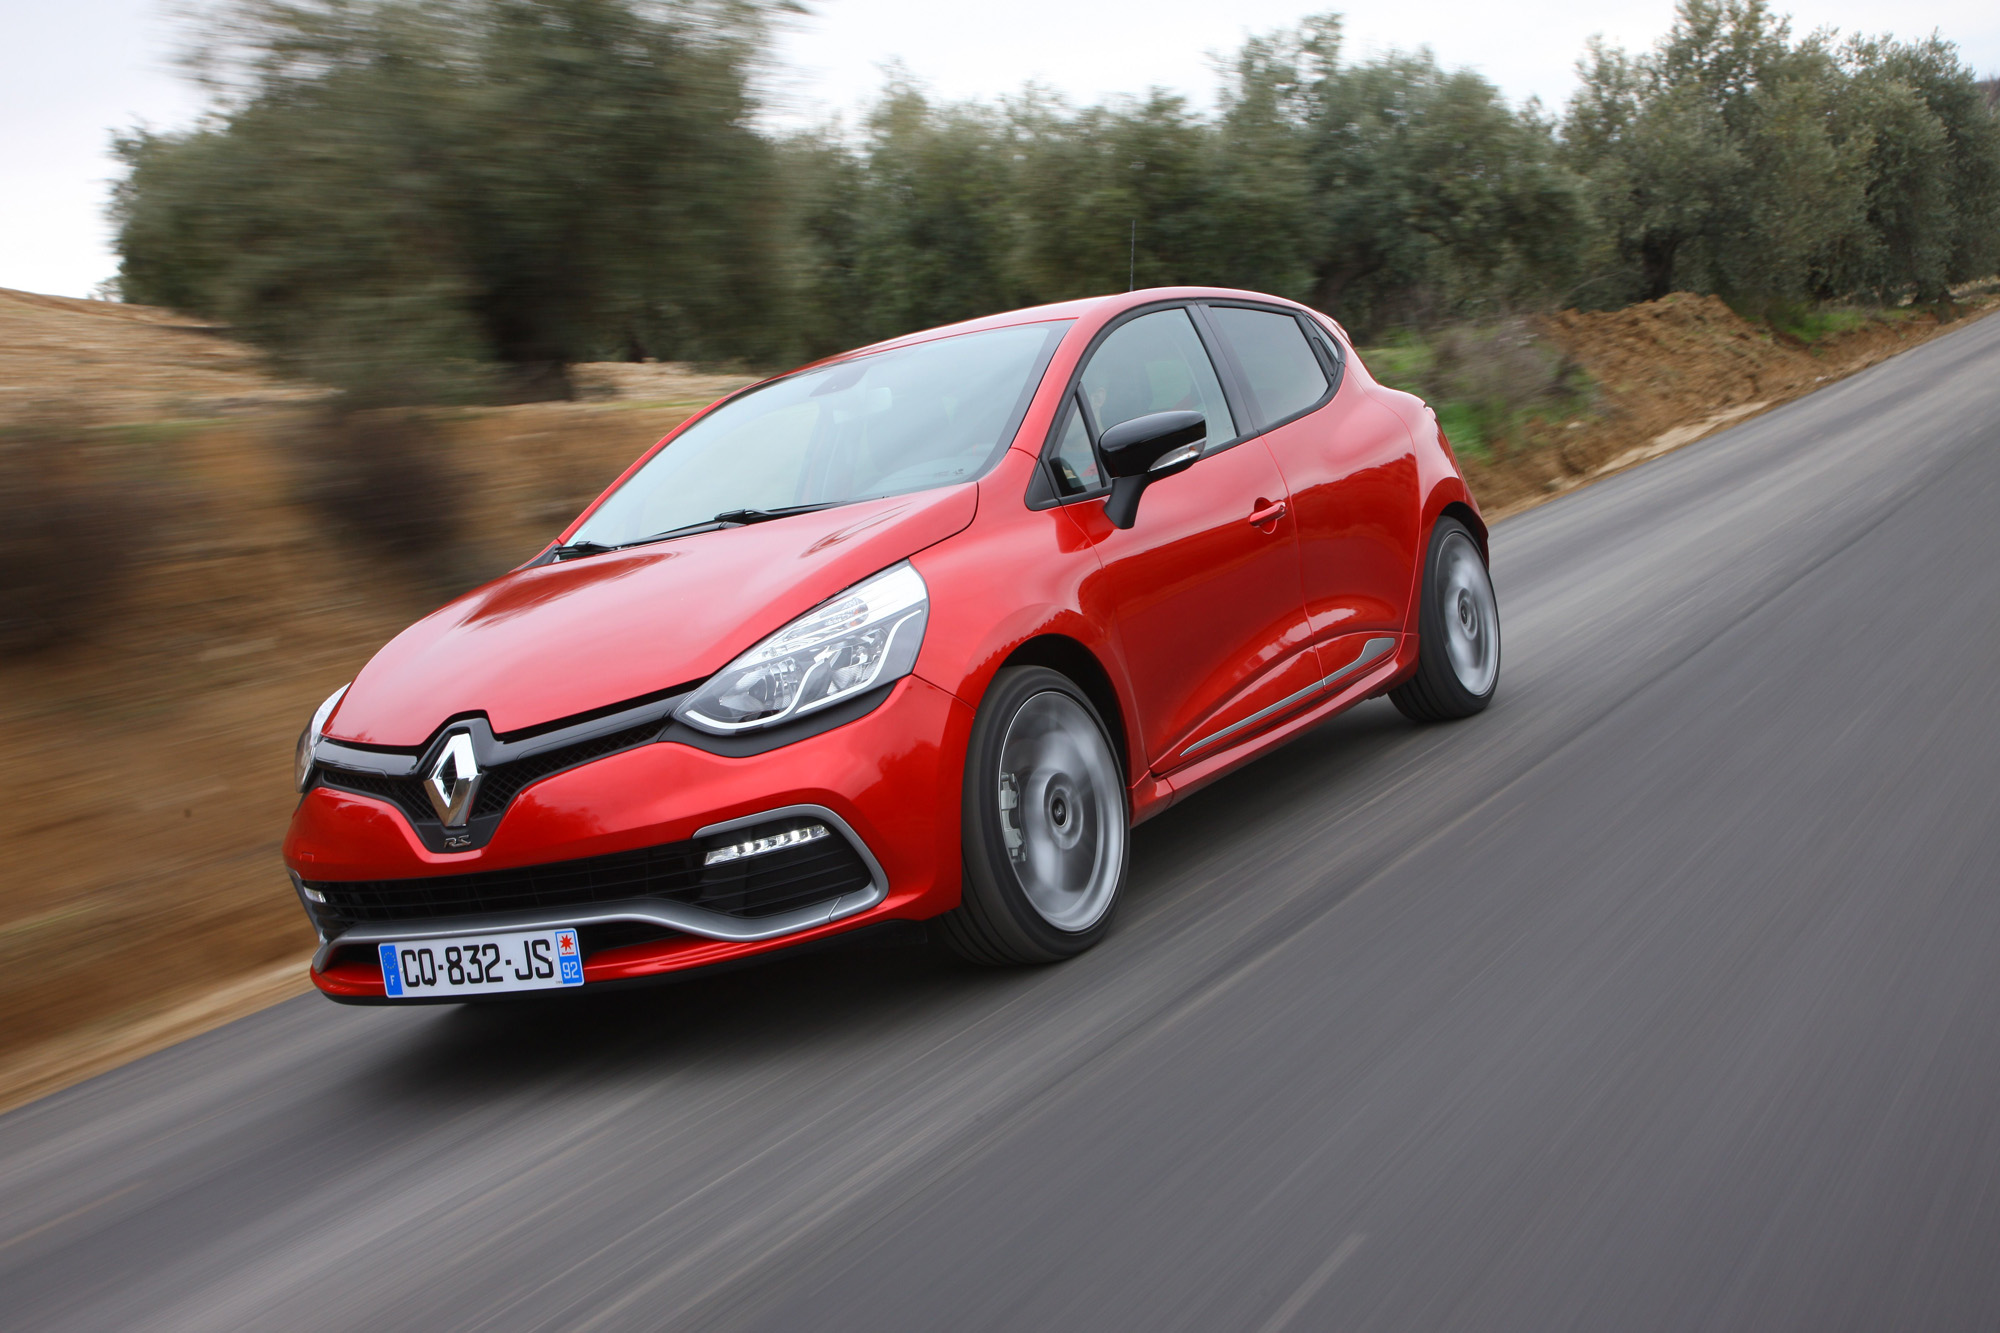 renault-clio-rs-2013-16